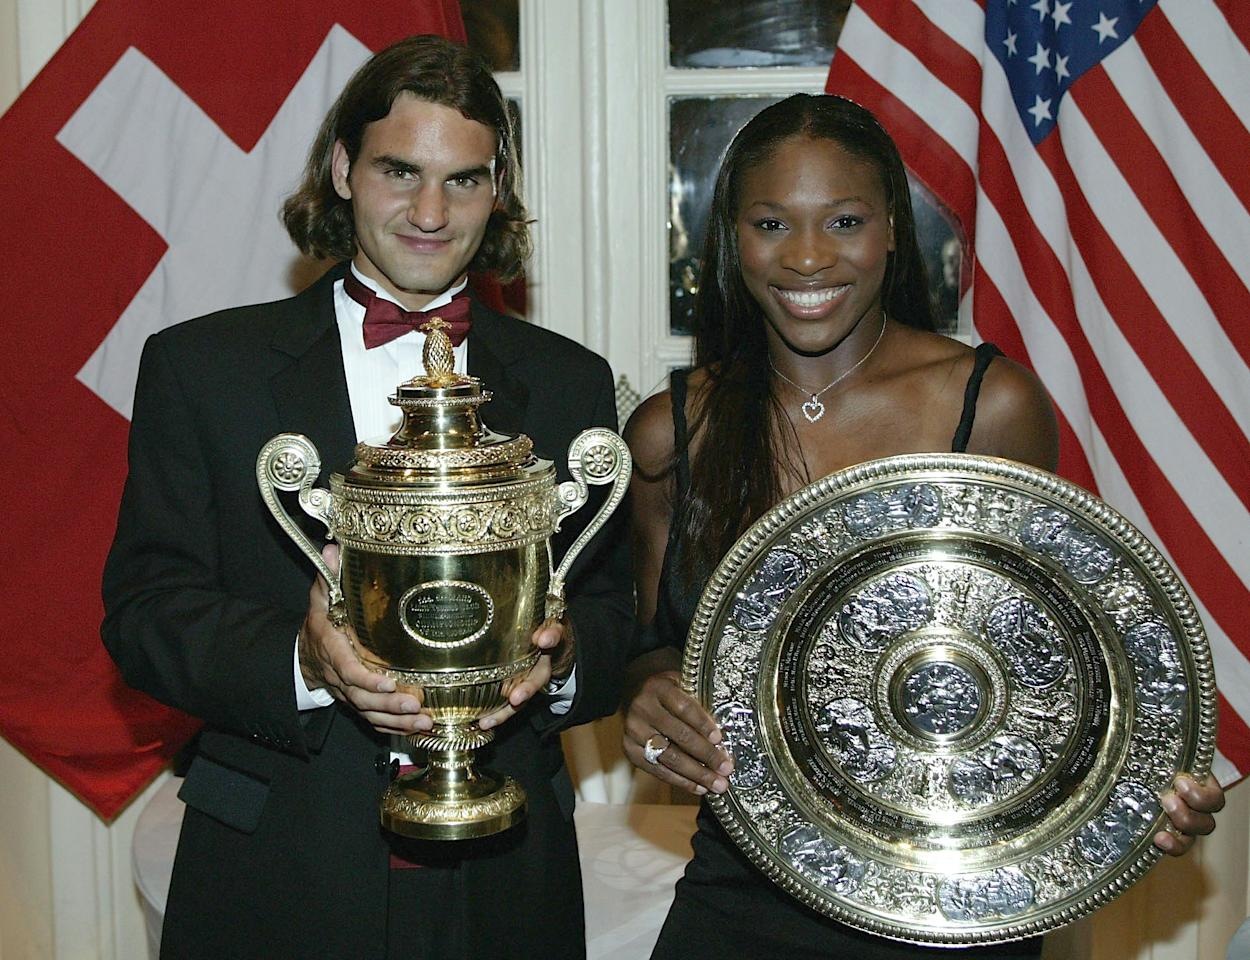 LONDON - JULY 6:  (FILE PHOTO) Wimbledon Champions Roger Federer of Switzerland and Serena Williams of the U.S. pose for photographs prior to attending the Wimbledon Ball at the Savoy Hotel on July 6, 2003 in London.  (Photo by Alex Livesey/Getty Images)  Celebrating 125 Years Of Wimbledon  Please refer to the following profile on Getty Images Archival for further imagery.  https://ec.yimg.com/ec?url=http%3a%2f%2fwww.gettyimages.co.uk%2fSearch%2fSearch.aspx%3fEventId%3d115973863%26amp%3bEditorialProduct%3dArchival%0aFashions&t=1506329422&sig=8fOdU1tX_o.qAFfVlWFjag--~D  http://www.gettyimages.co.uk/Search/Search.aspx?EventId=115973067&EditorialProduct=Archival  For further imagery also see this lightbox http://www.gettyimages.co.uk/Account/MediaBin/LightboxDetail.aspx?Id=19295855&MediaBinUserId=3936288